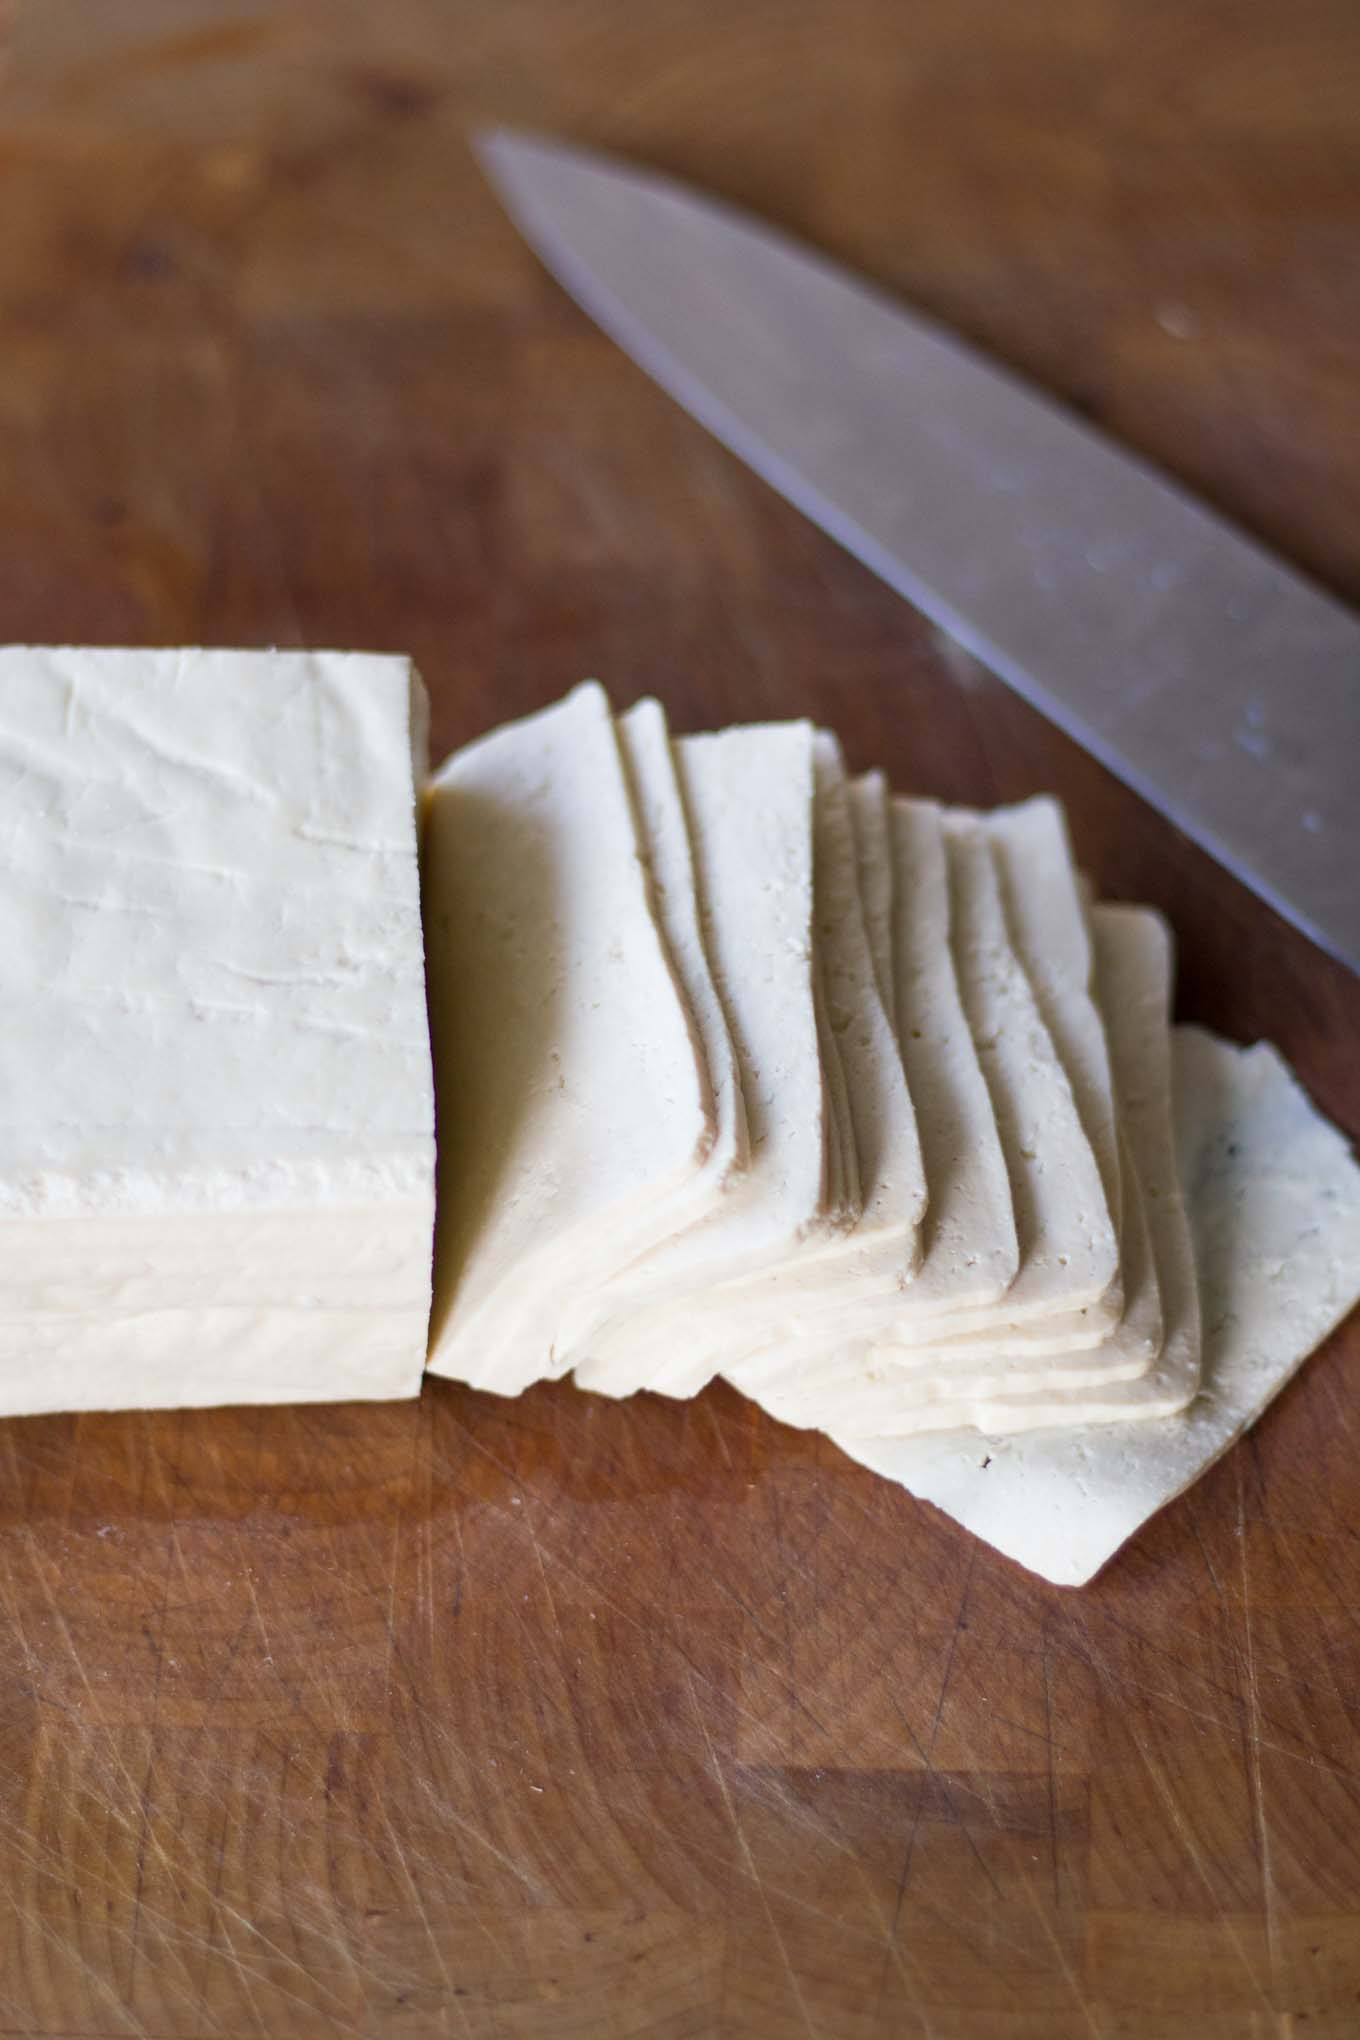 Easy Tofu Bacon - use a sharp, heavy knife to make thin slices